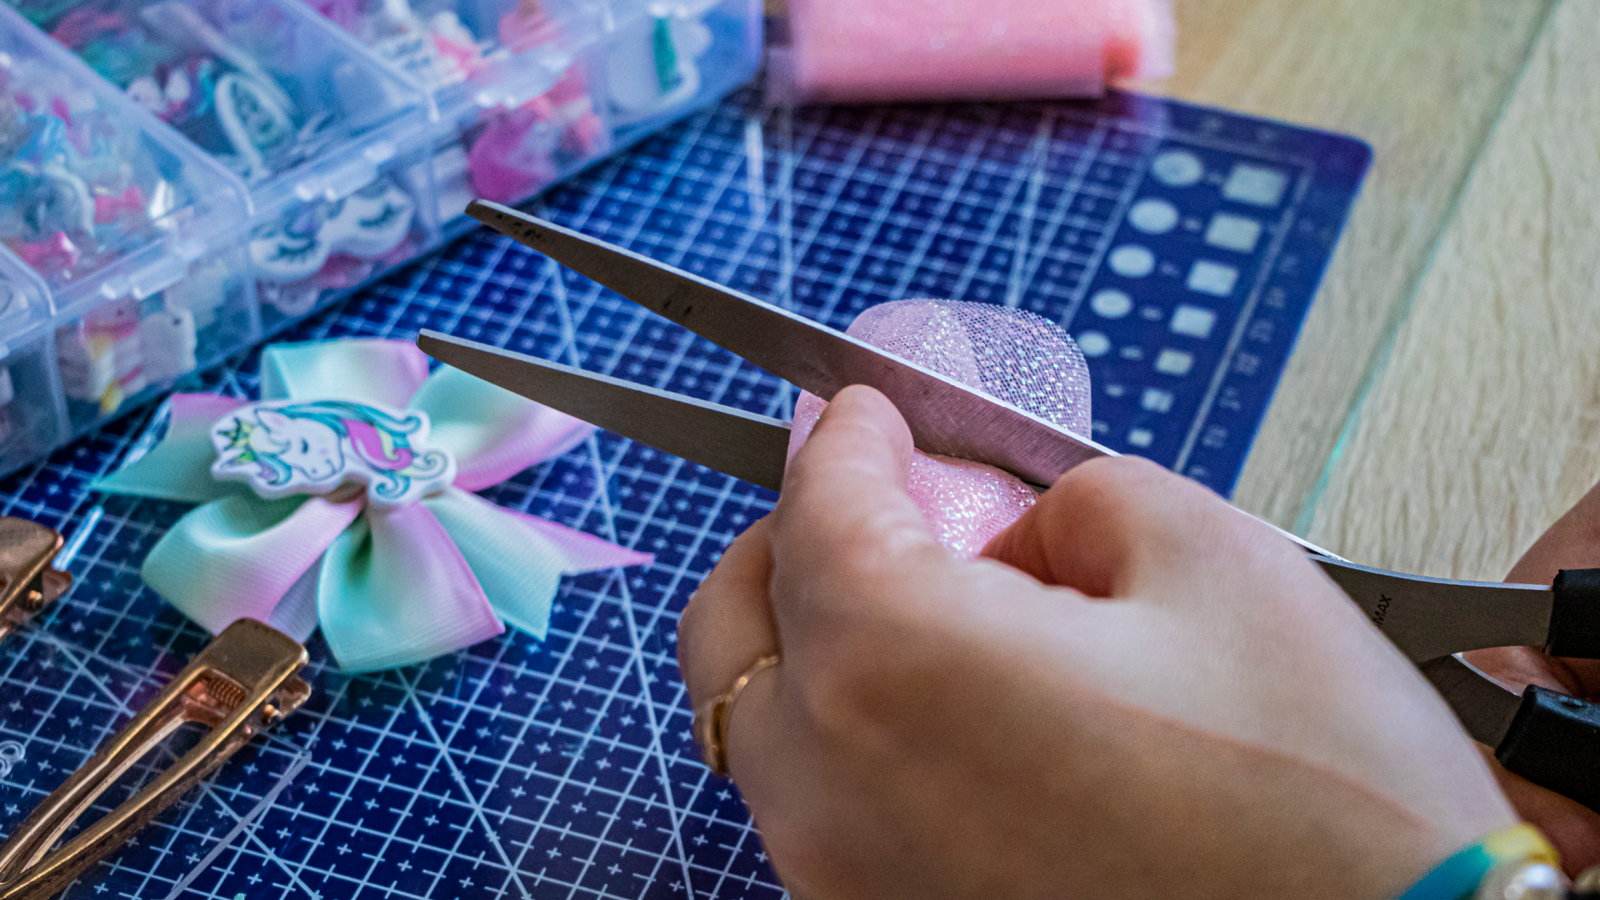 The process of making a bow for a hair clip